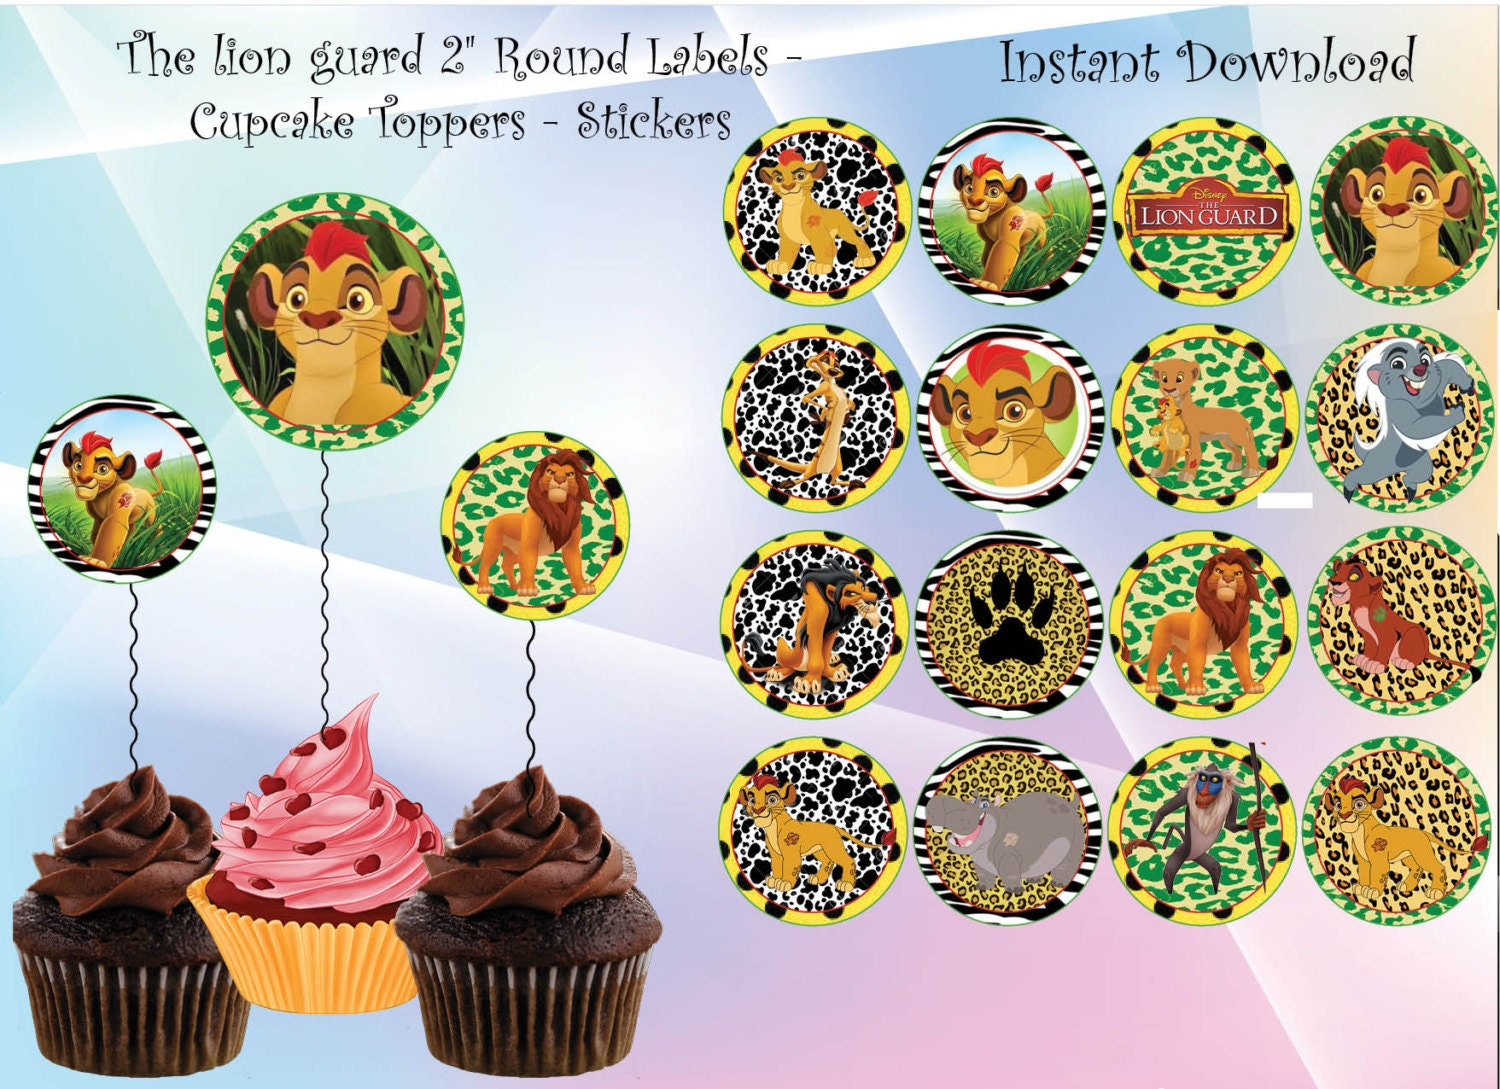 Instant DL The Lion Guard Cupcake Toppers